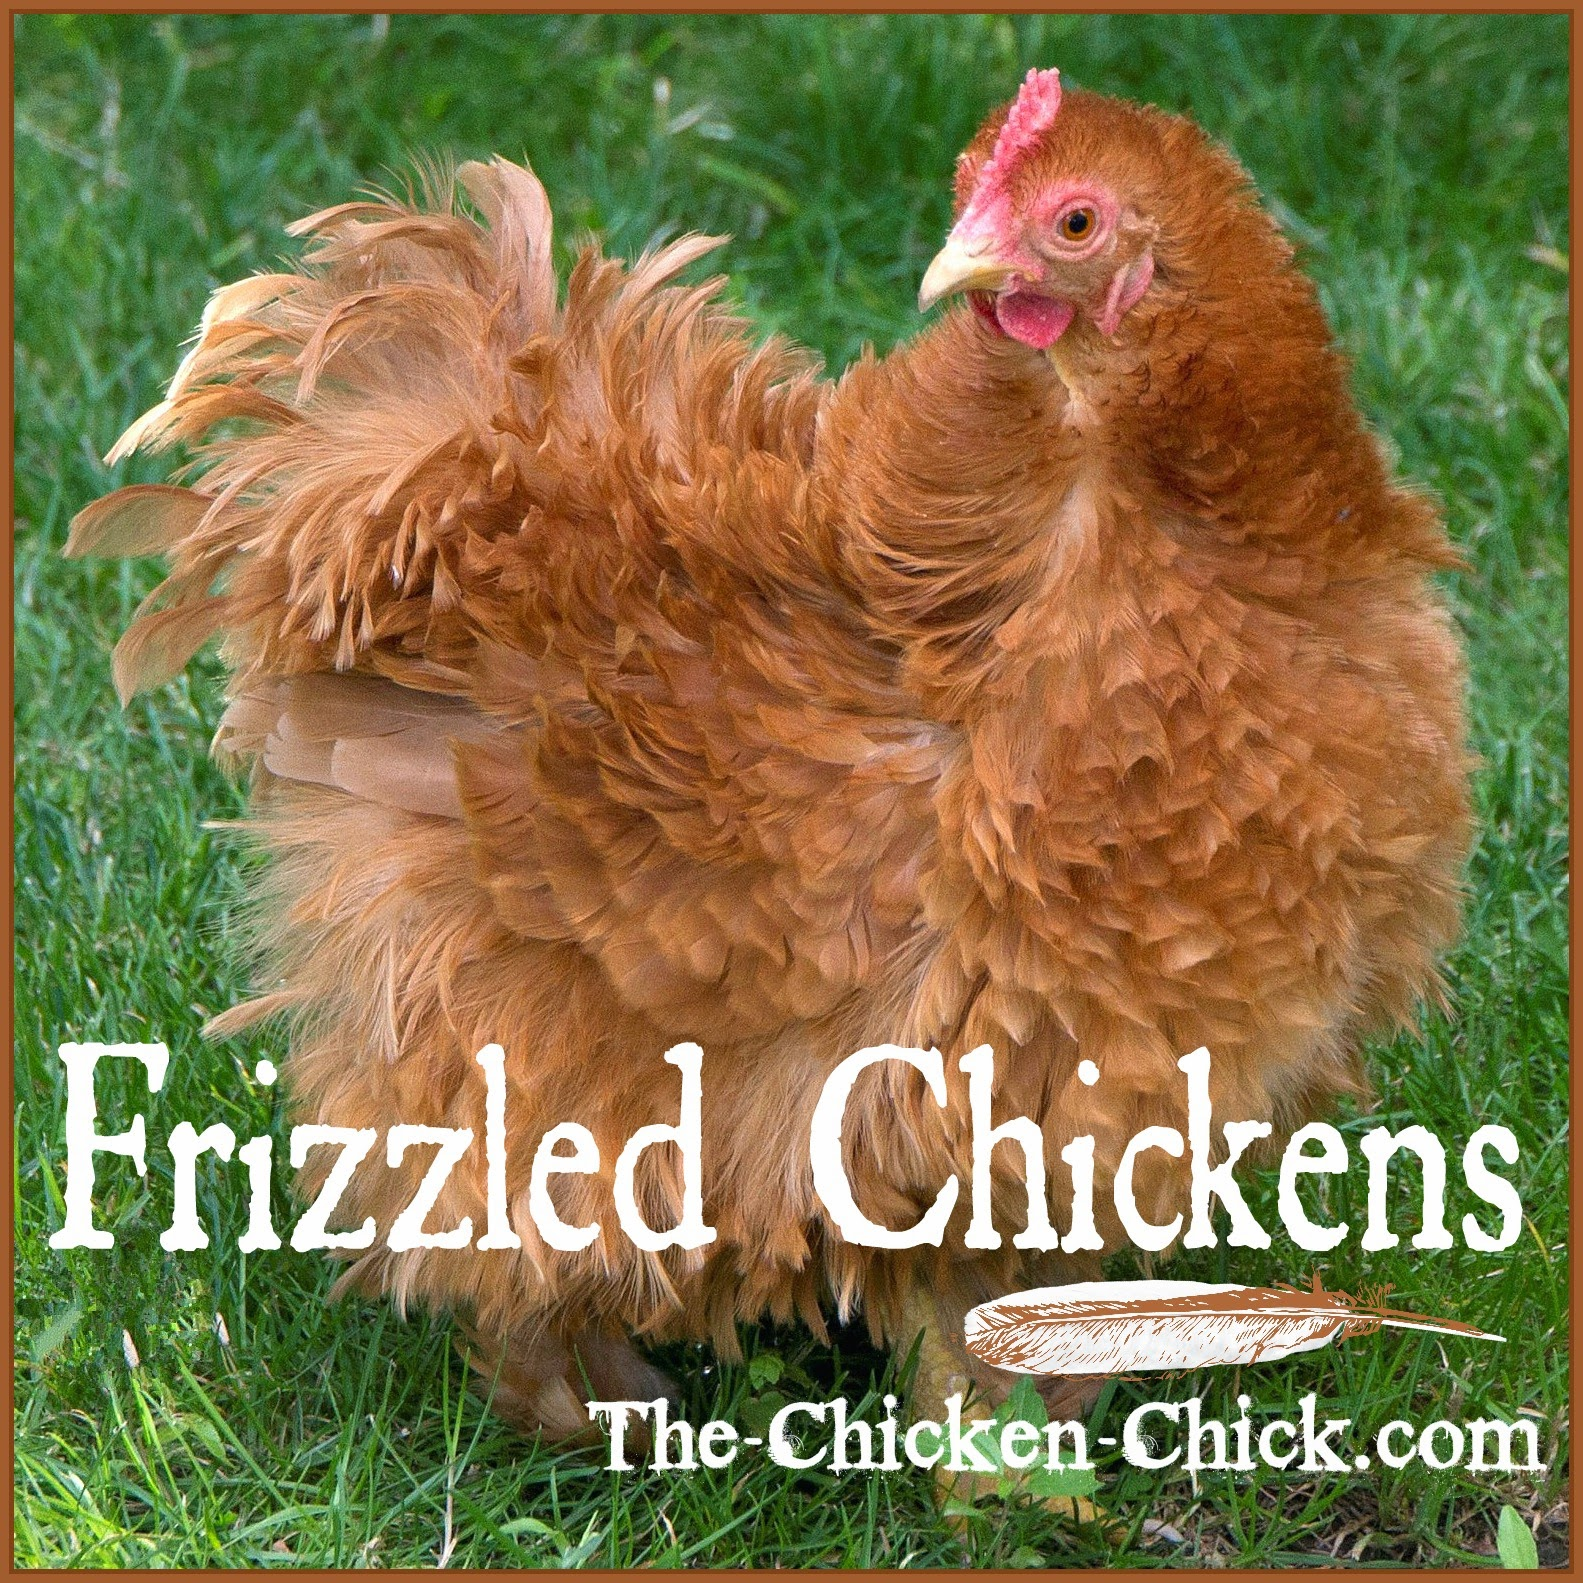 This is Rachel. If you haven't already made her acquaintance, she's something of a hen starlet on my Facebook page where she is featured daily in all her fluffy cuteness. Rachel is a Bantam Cochin Frizzle. Cochin is her breed, bantam describes her miniature size and frizzle describes her unusual feathers.